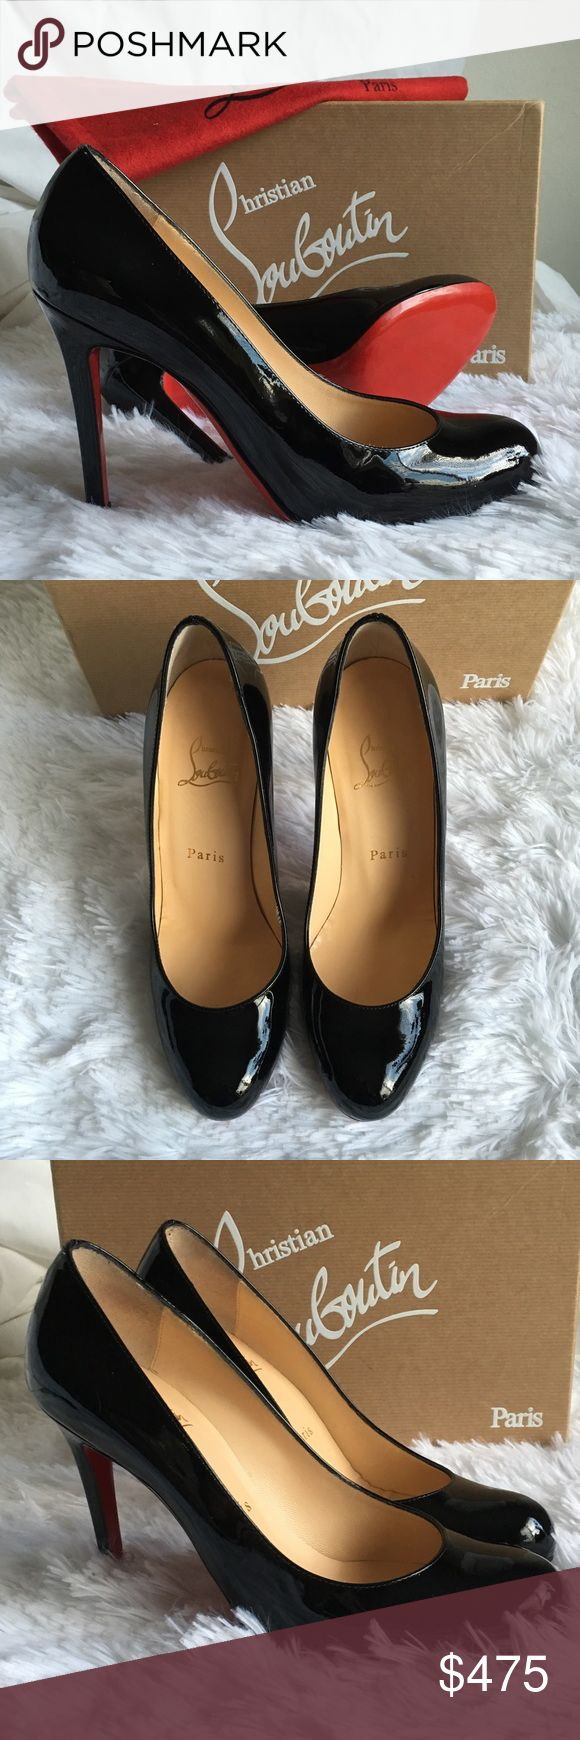 "NIB Christian Louboutin Ron Ron Black Pumps 37 NIB Christian Louboutin Ron Ron Black 100mm Pumps 37.  Classic round-toe pump with sleek leather styling.  Signature red soles.  4"" heel.  Comes with box (not original) and dust bags. Christian Louboutin Shoes Heels"